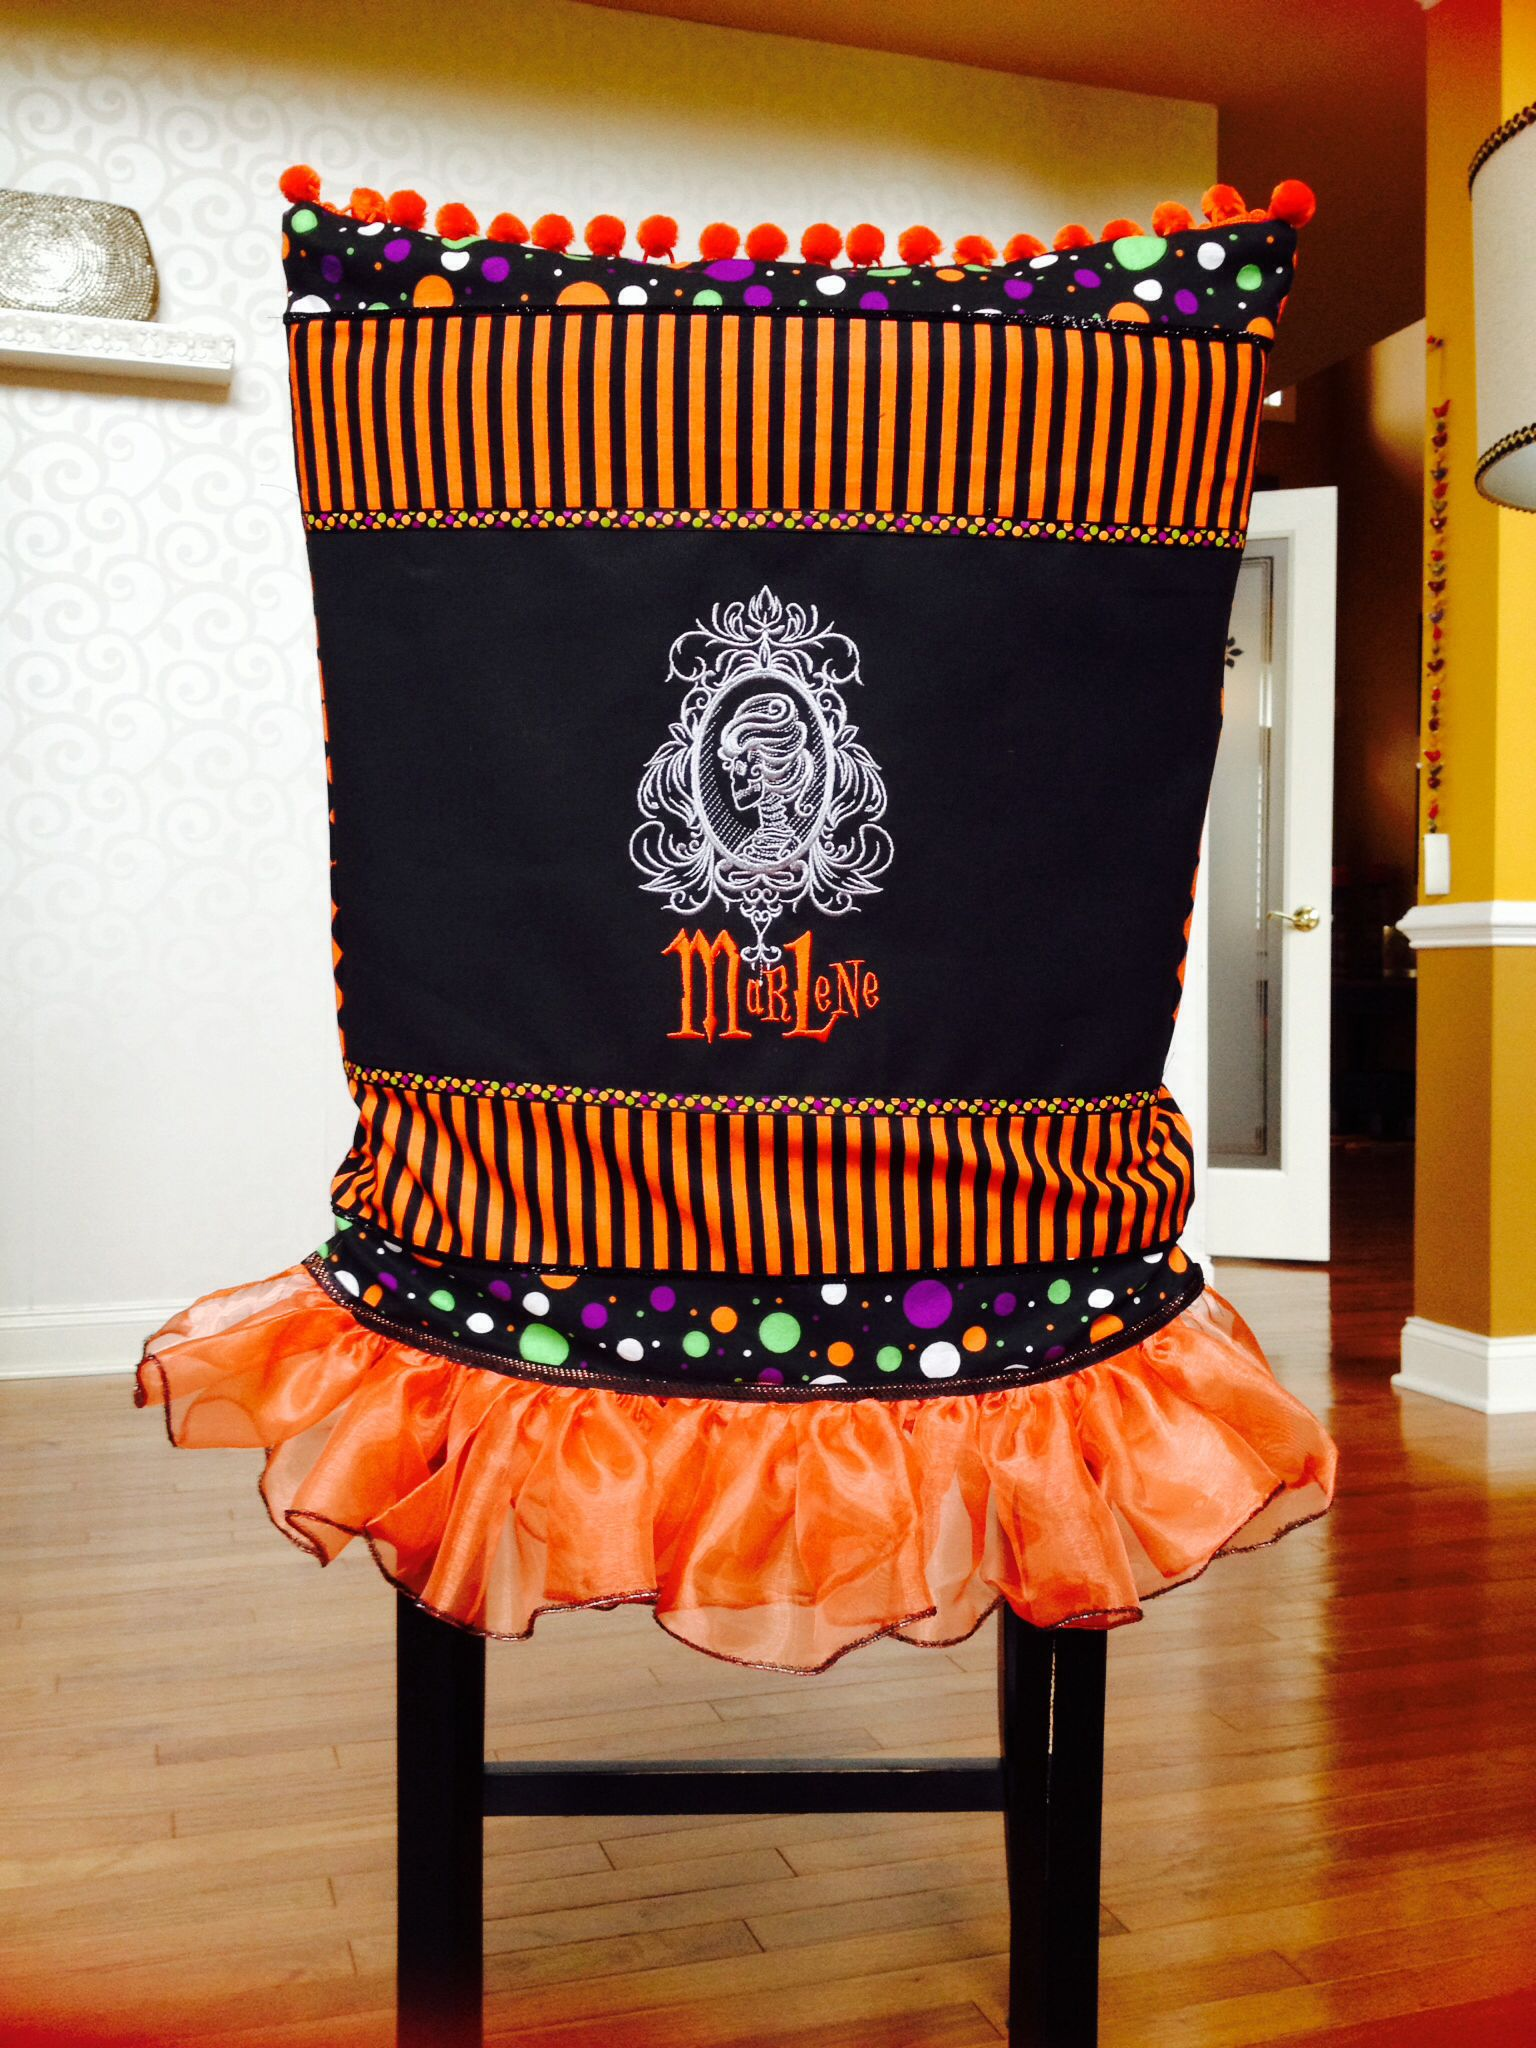 Pleasing Halloween Chair Slip Cover With Ruffled Skirt In 2019 Caraccident5 Cool Chair Designs And Ideas Caraccident5Info